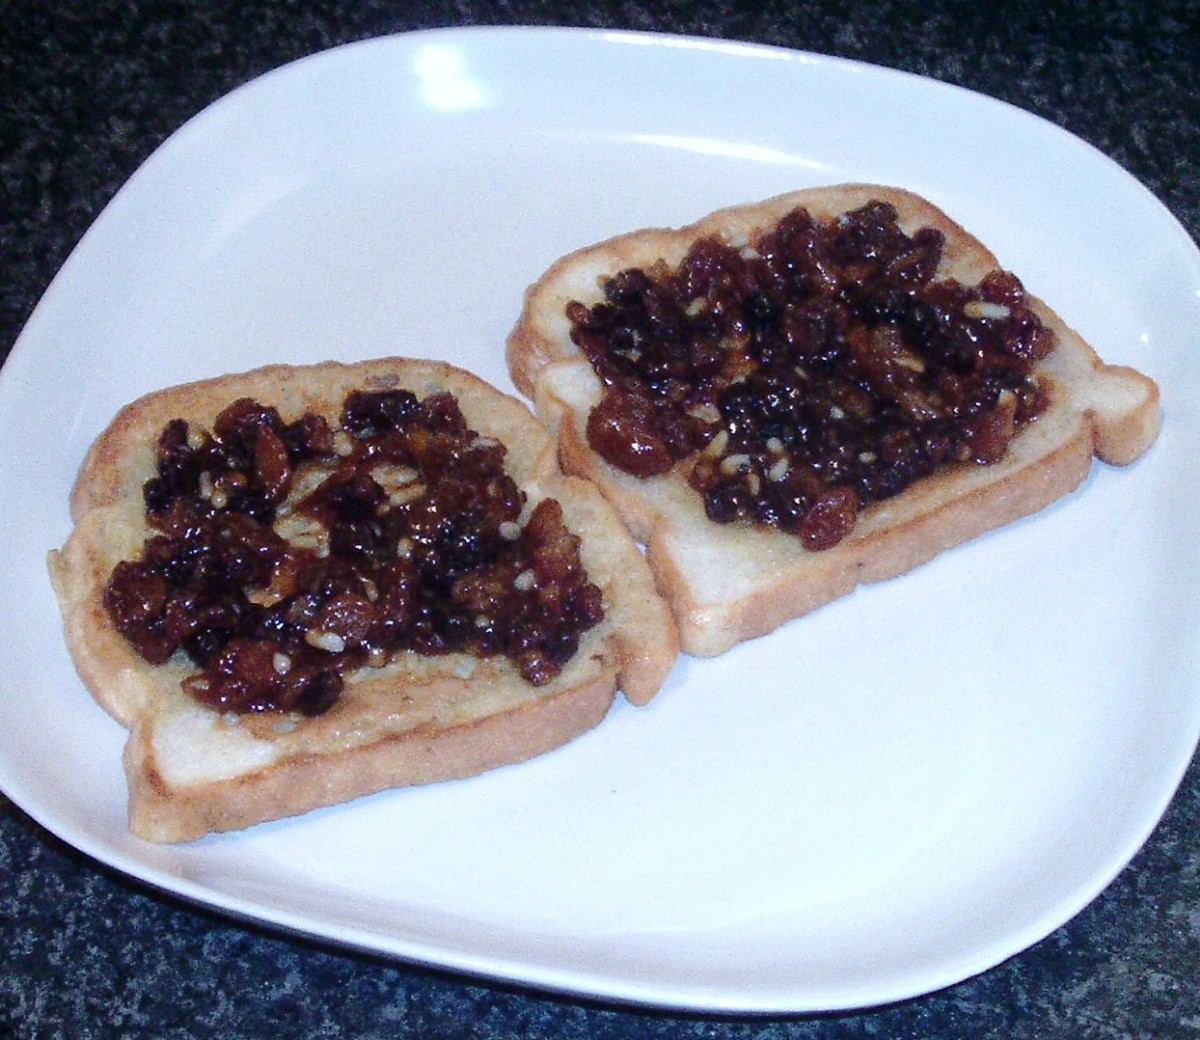 Mincemeat is spread on French toast